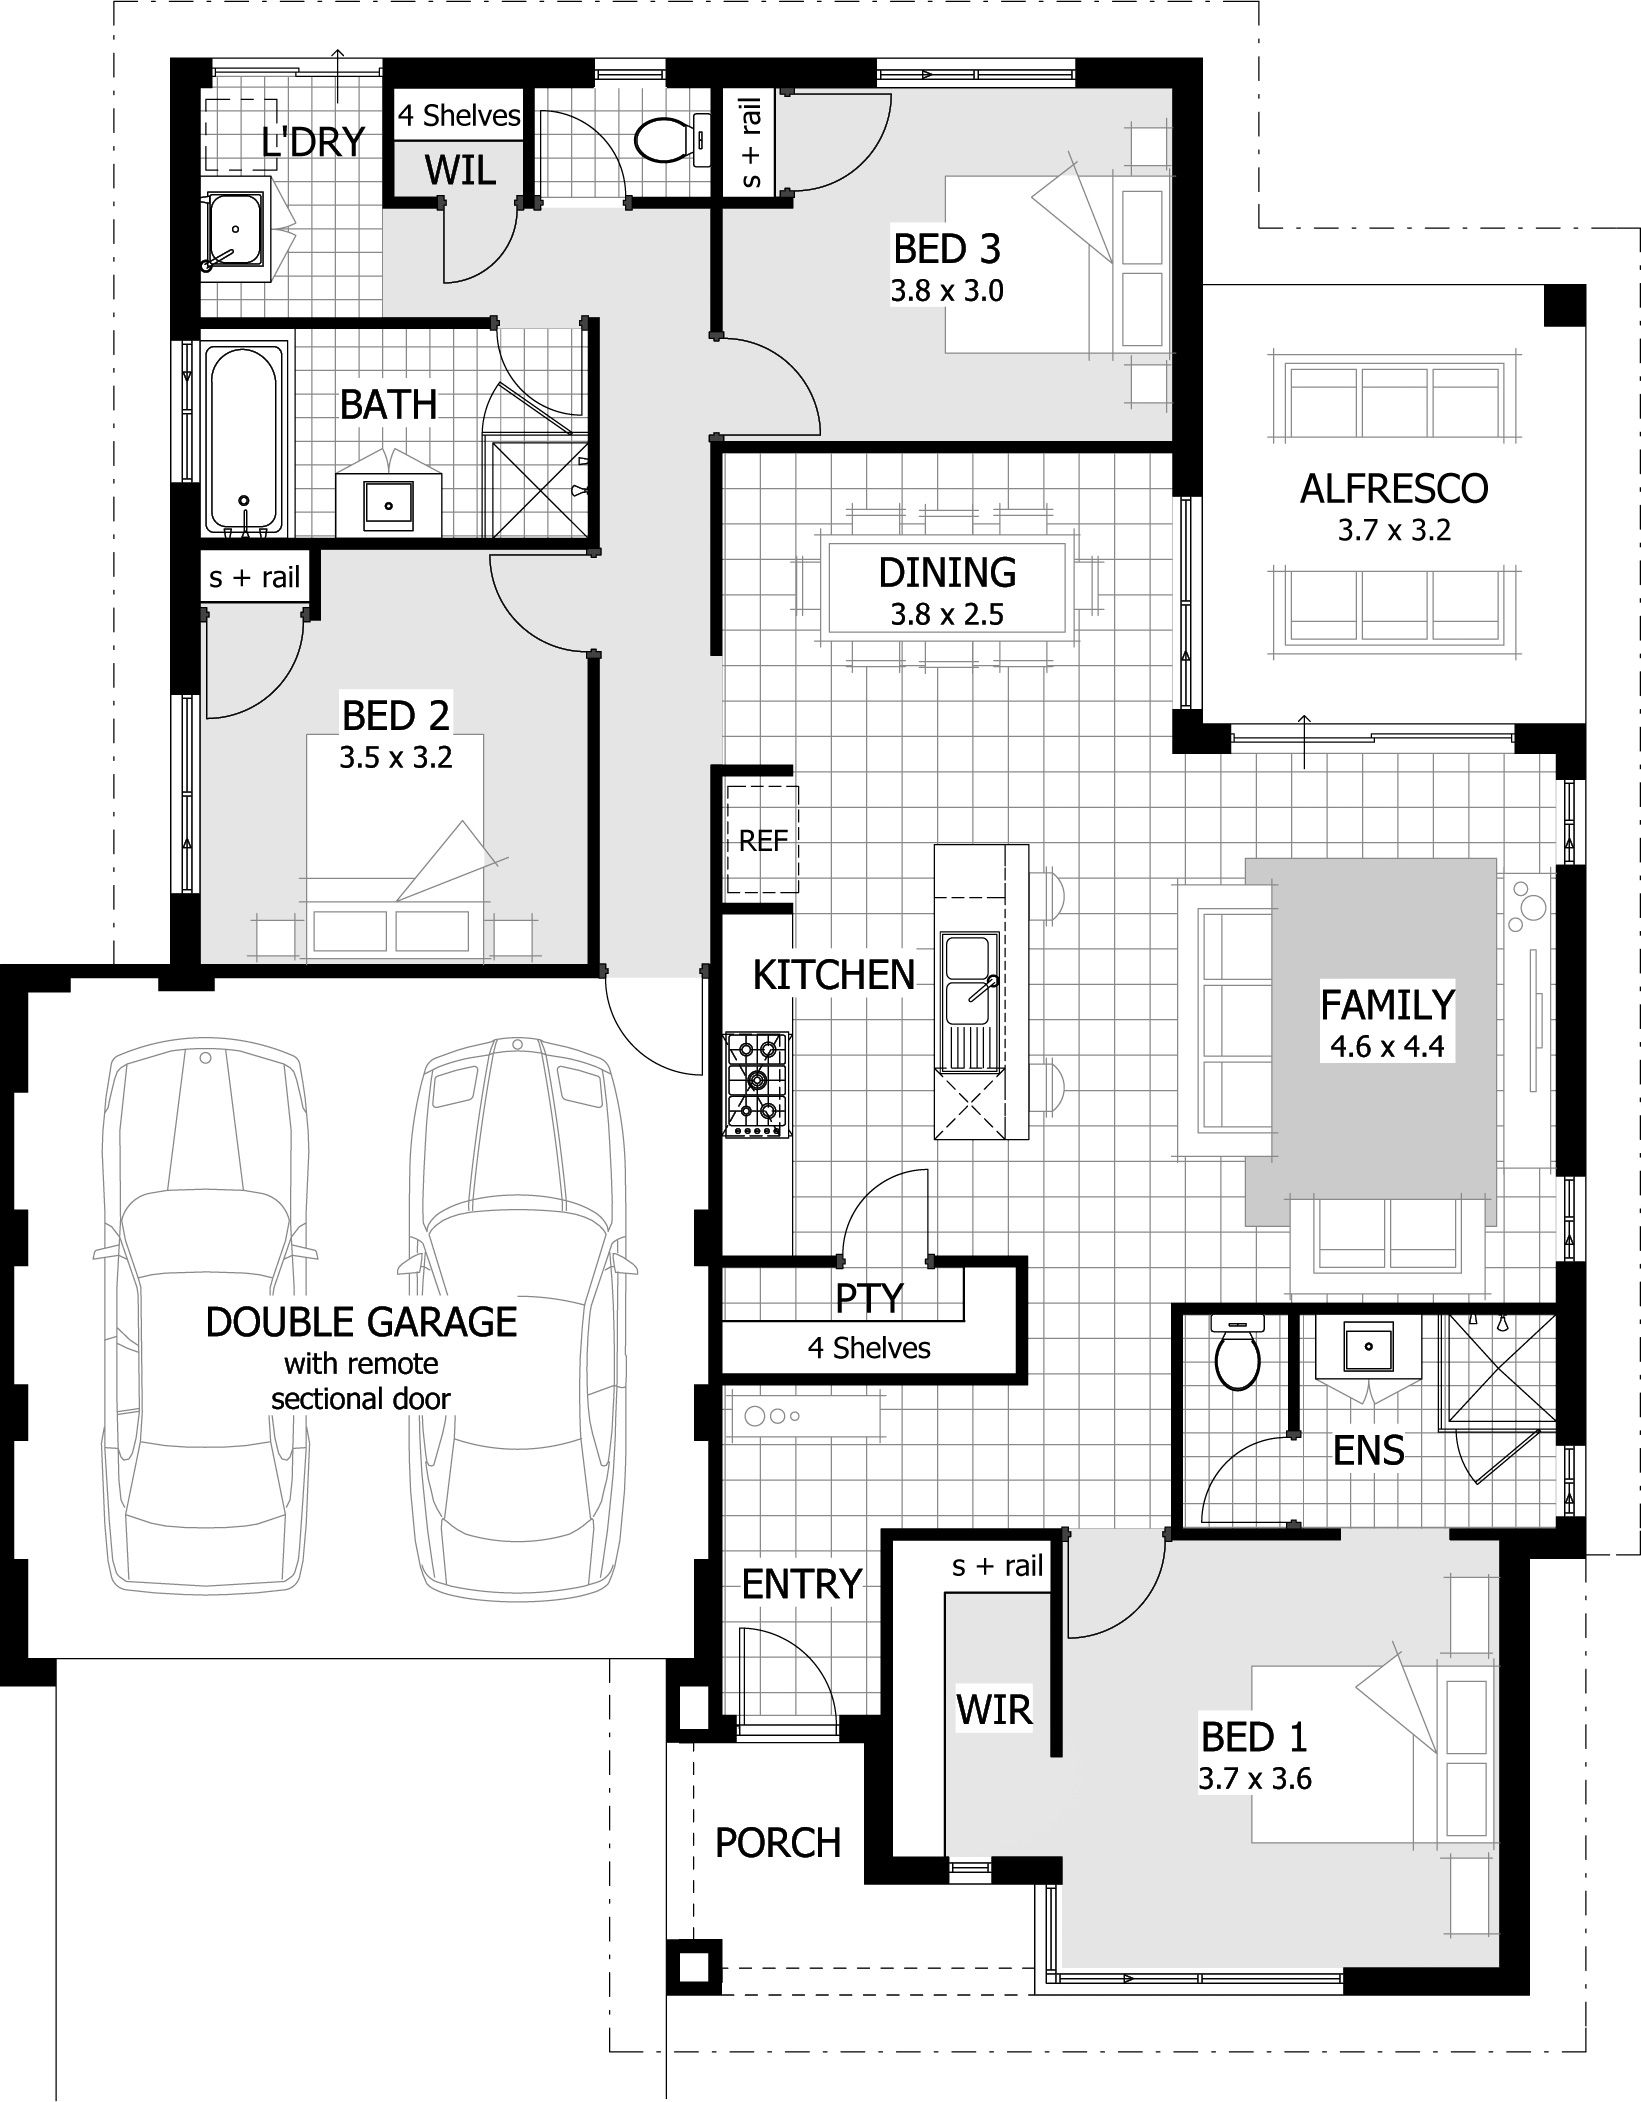 Unusual Bedroom Floor Plan Bungalow With Valencia Unique Home Plans House